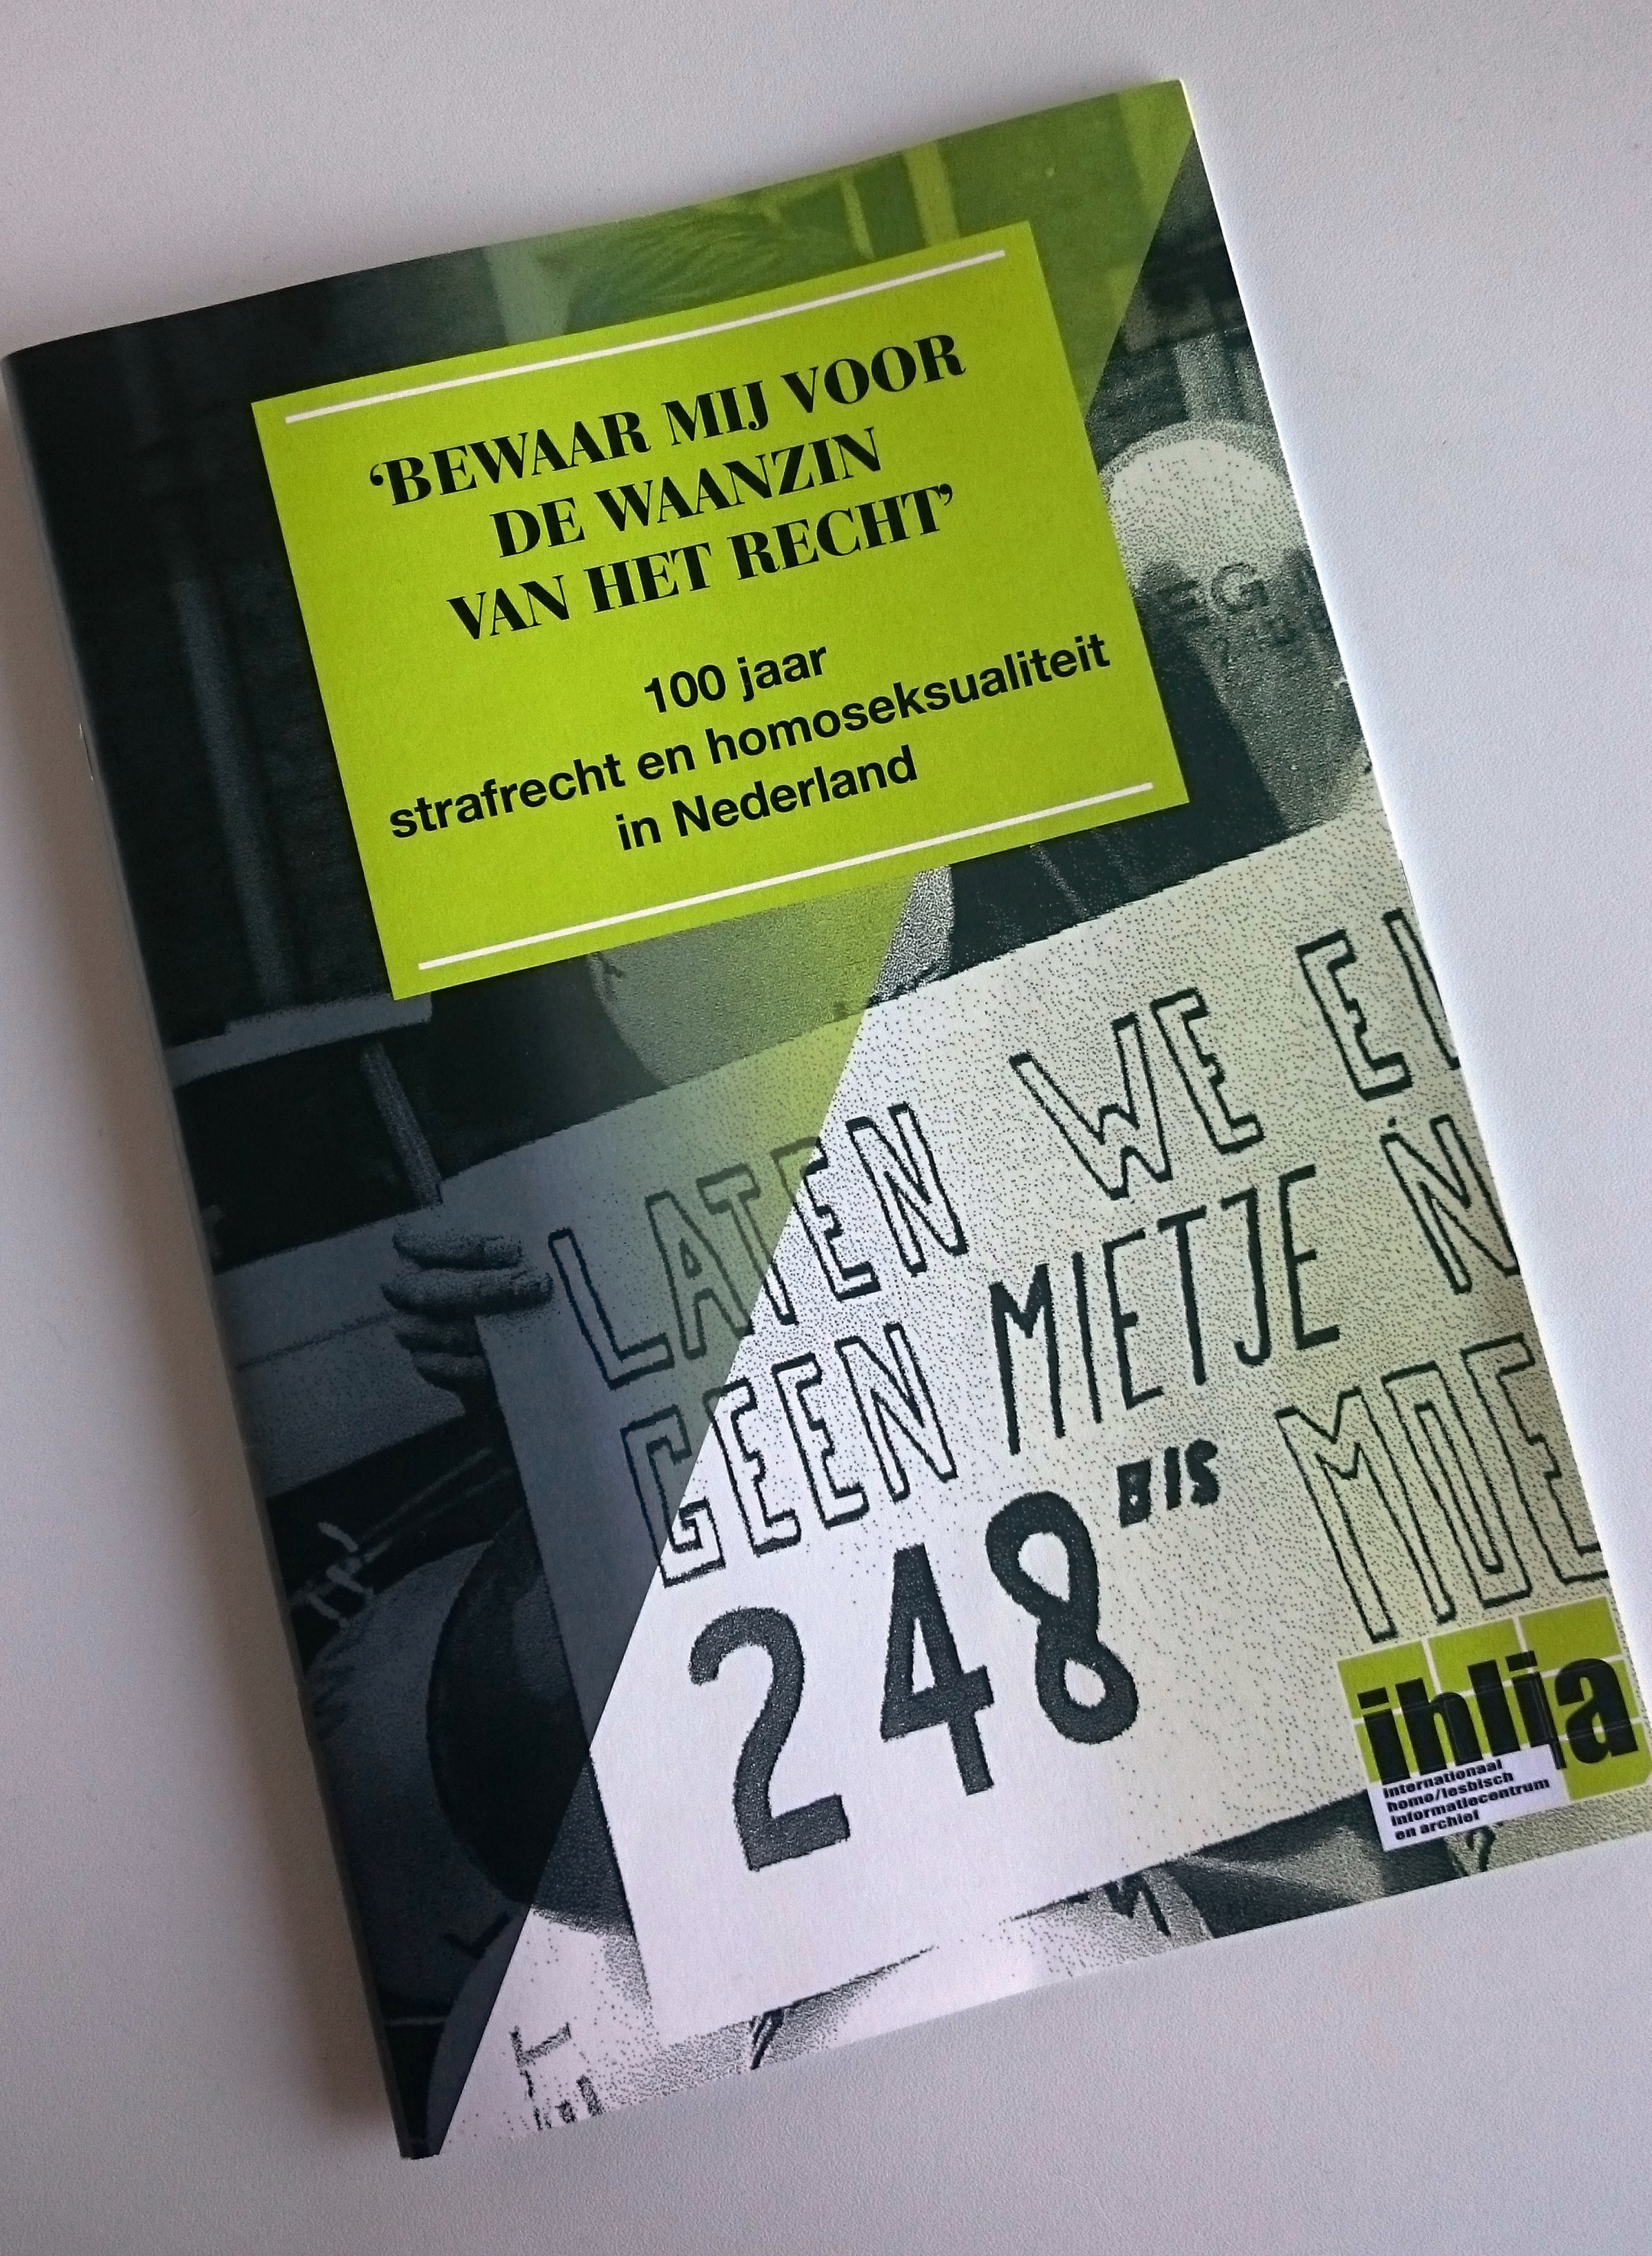 Brochure 'Bewaar mij voor de waanzin van het recht', 100 jaar strafrecht en homoseksualiteit in Nederland ['Save me from the madness of the law', 100 years criminal law and homosexuality in the Netherlands] published by Ihlia in addition to the exhibit. Photo courtesy of Maddie van Leenders